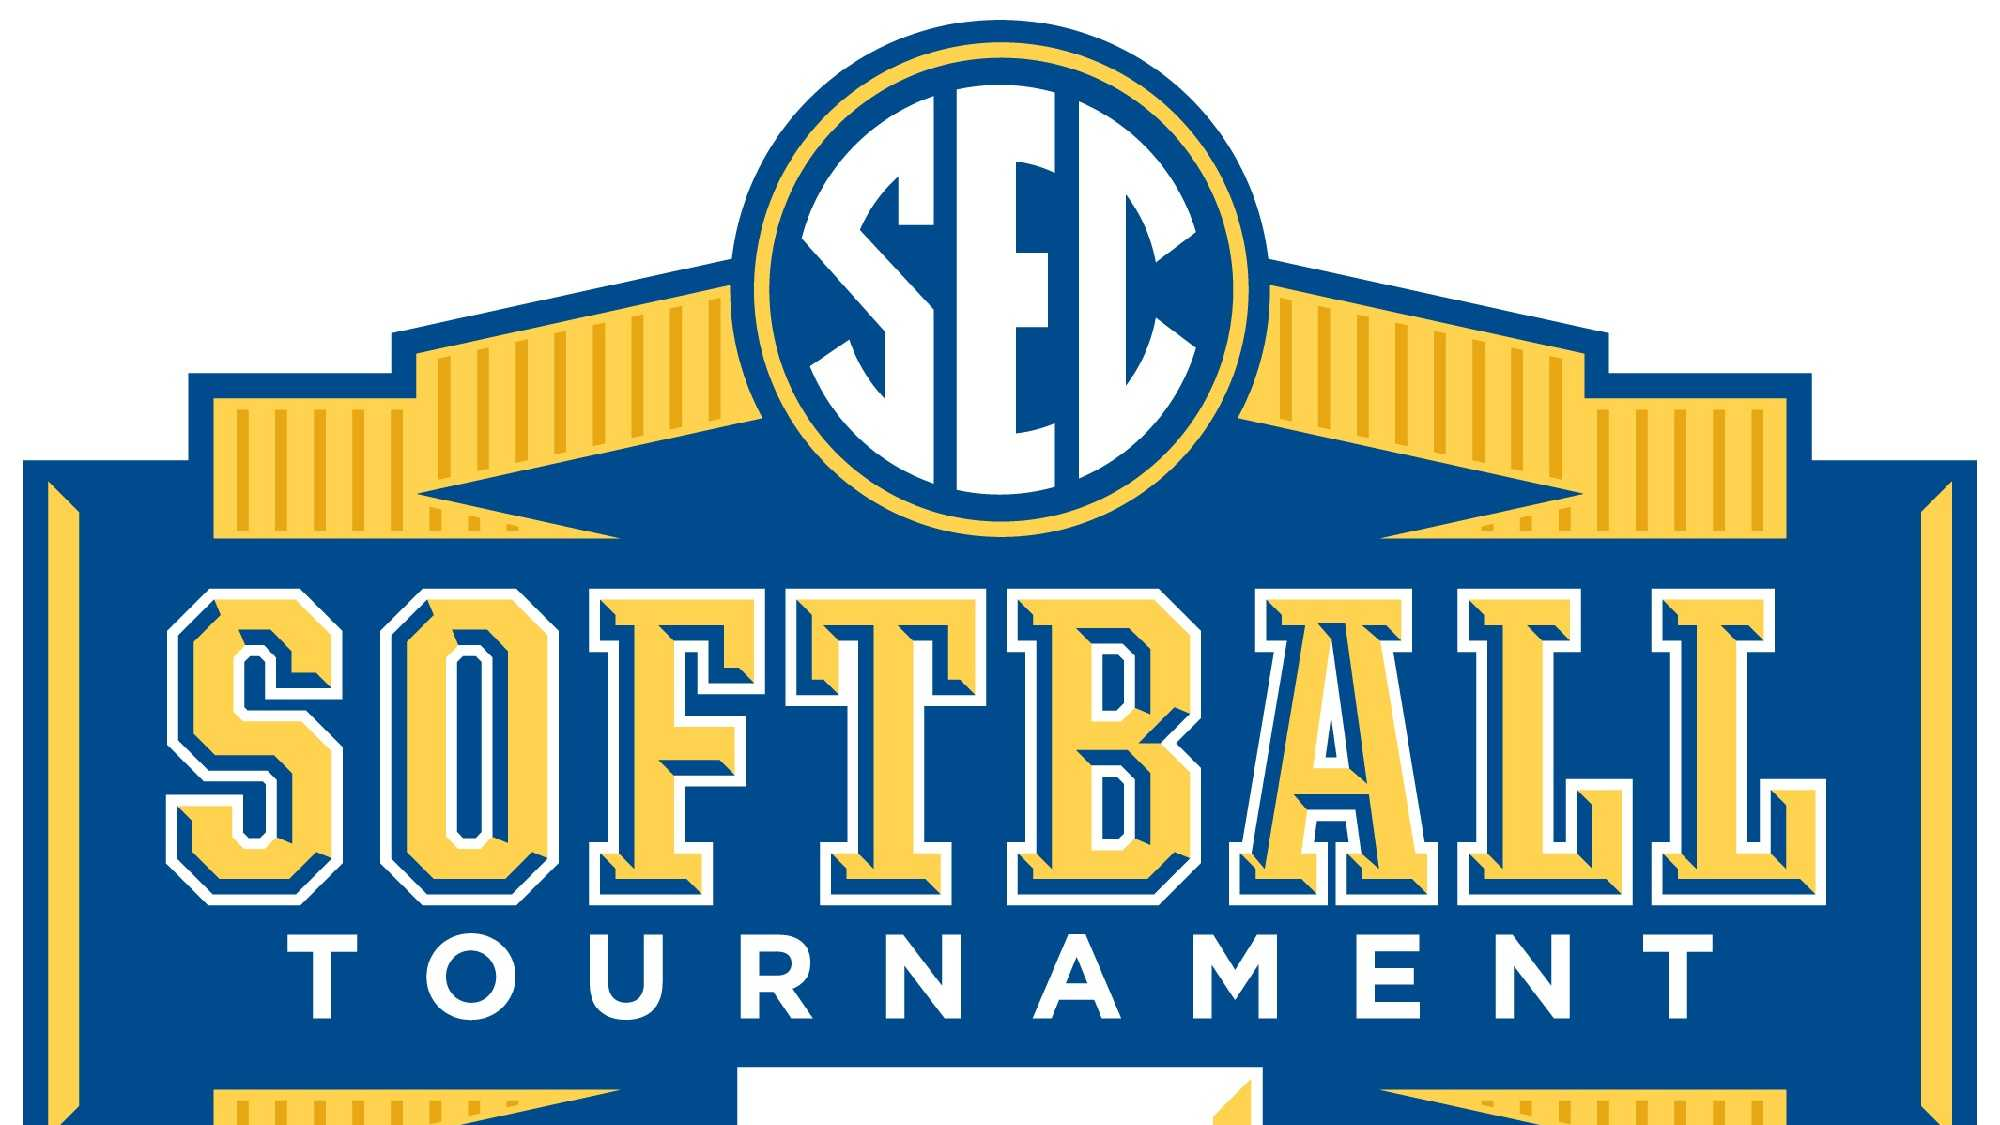 2016 SEC Softball Tournament logo.jpg